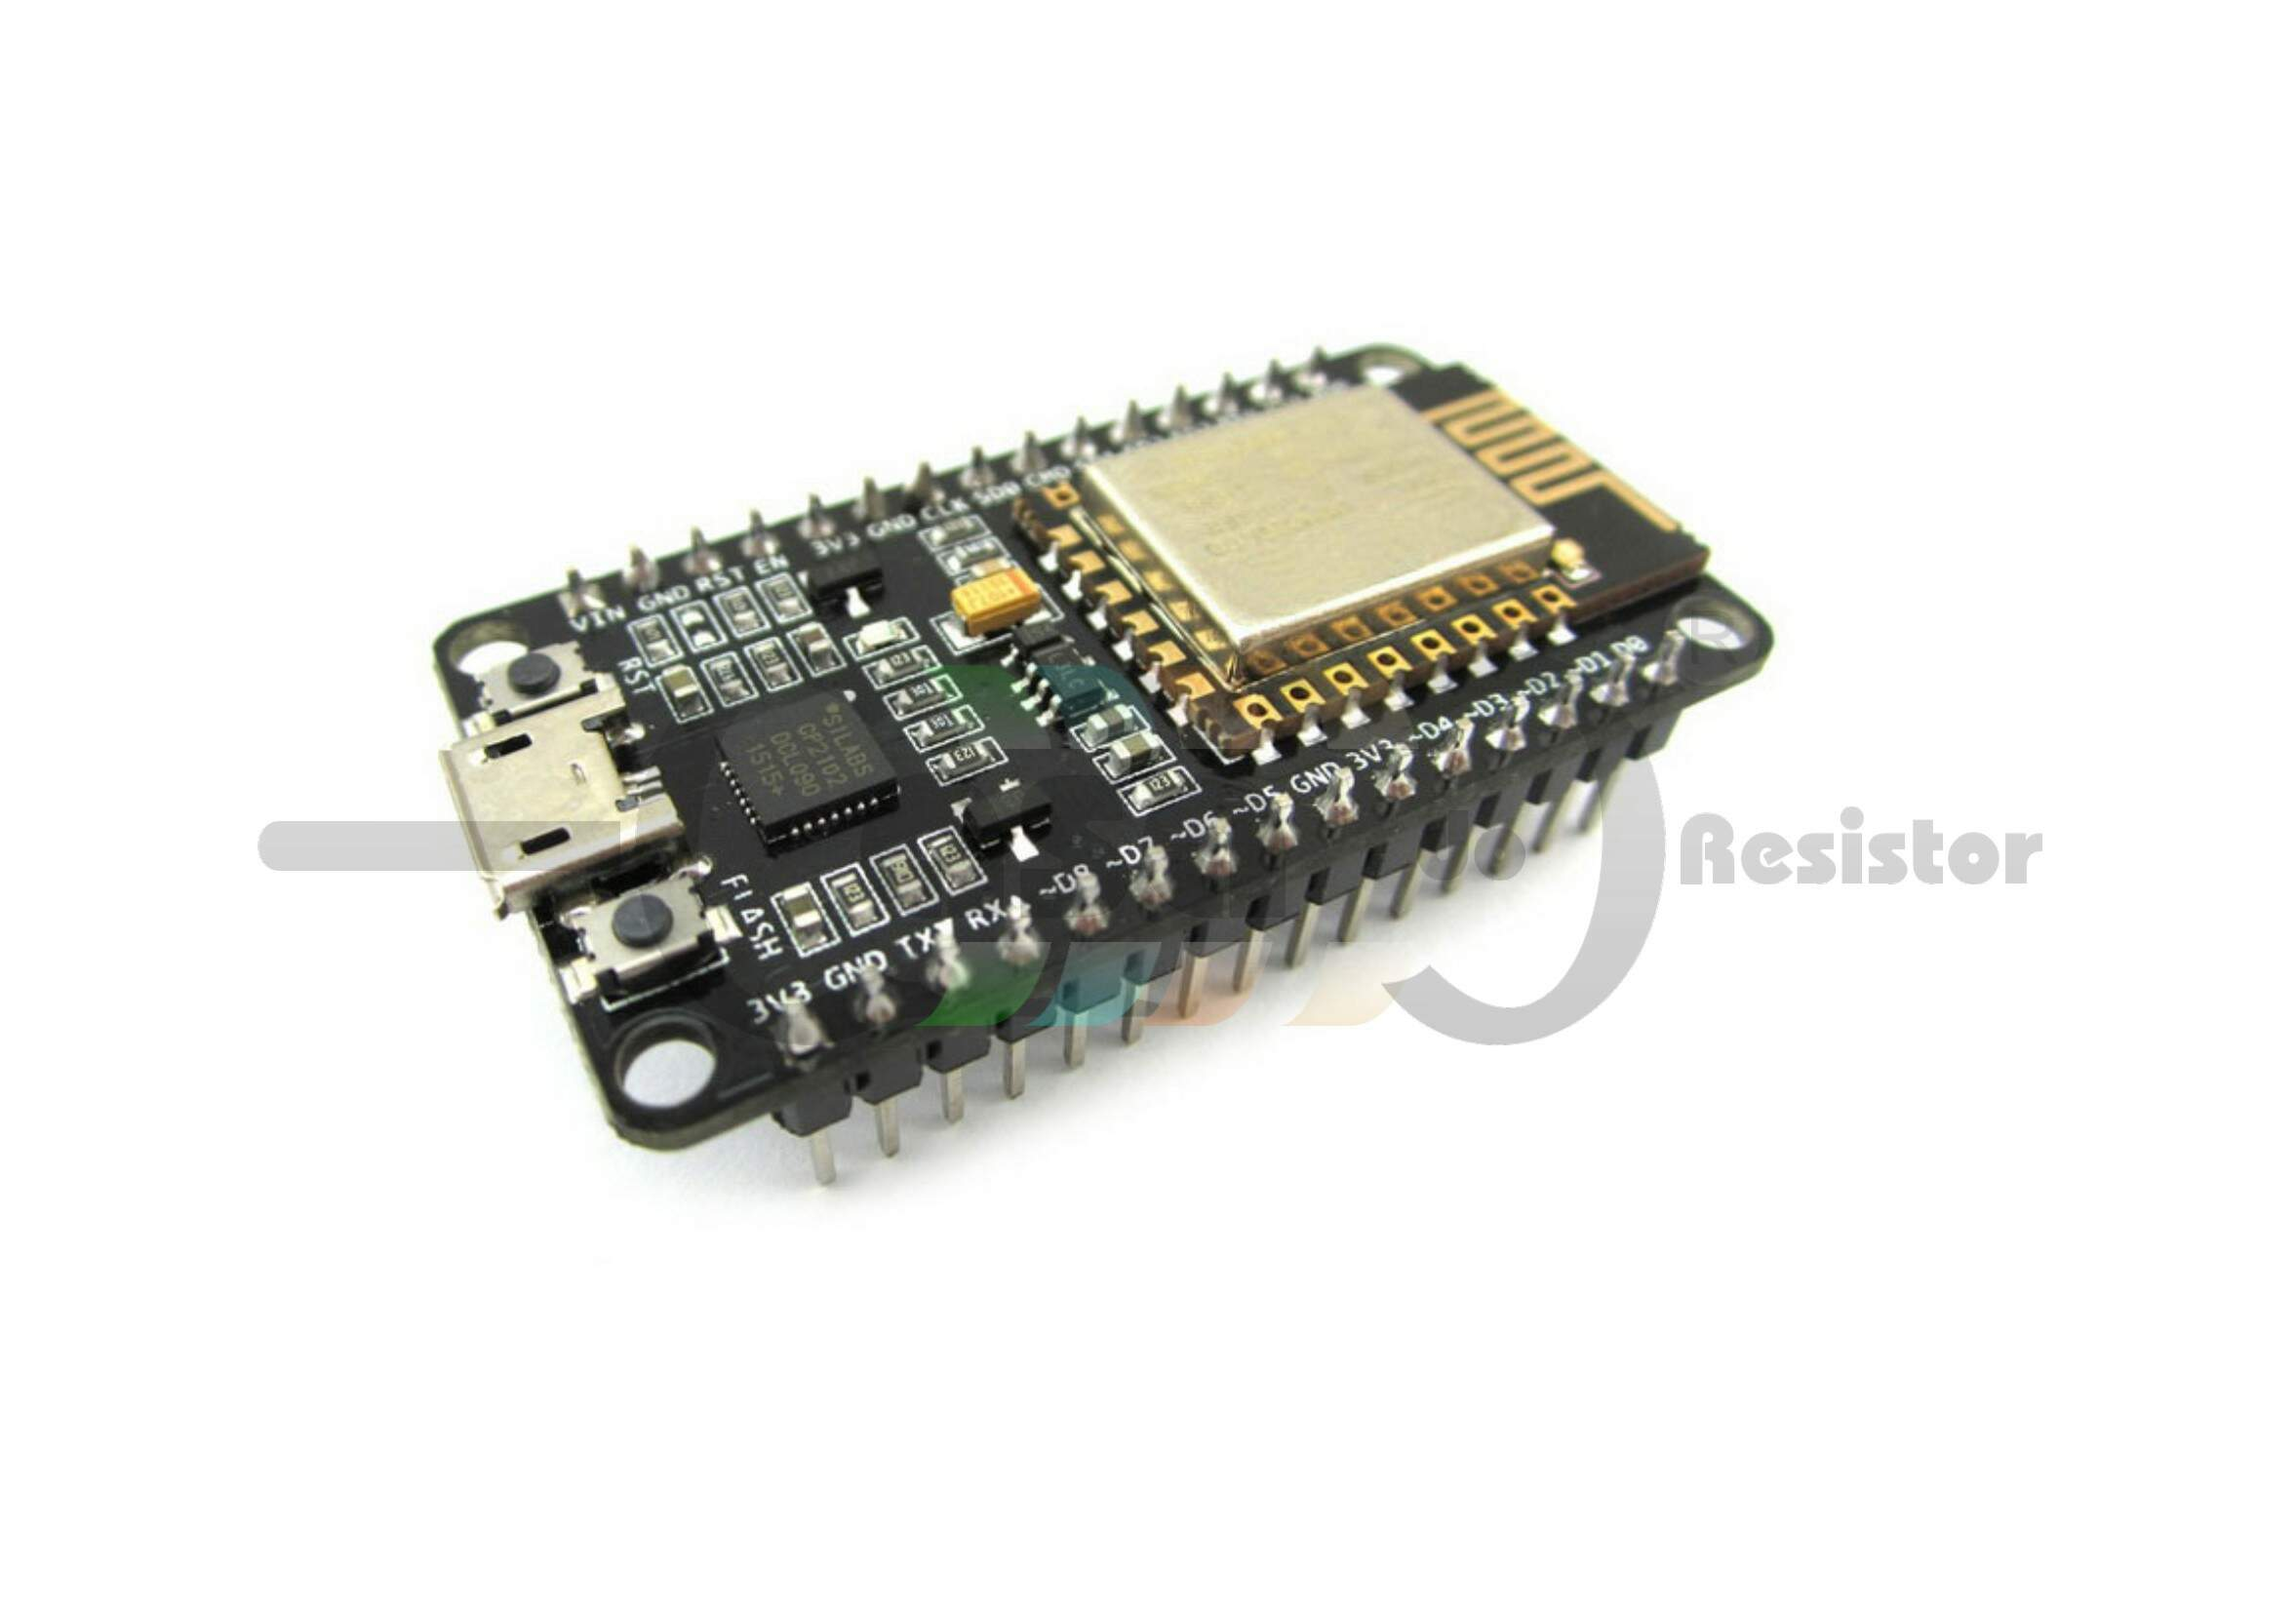 Interface ESP8266 Node MCU Wifi (ZEEA0064)